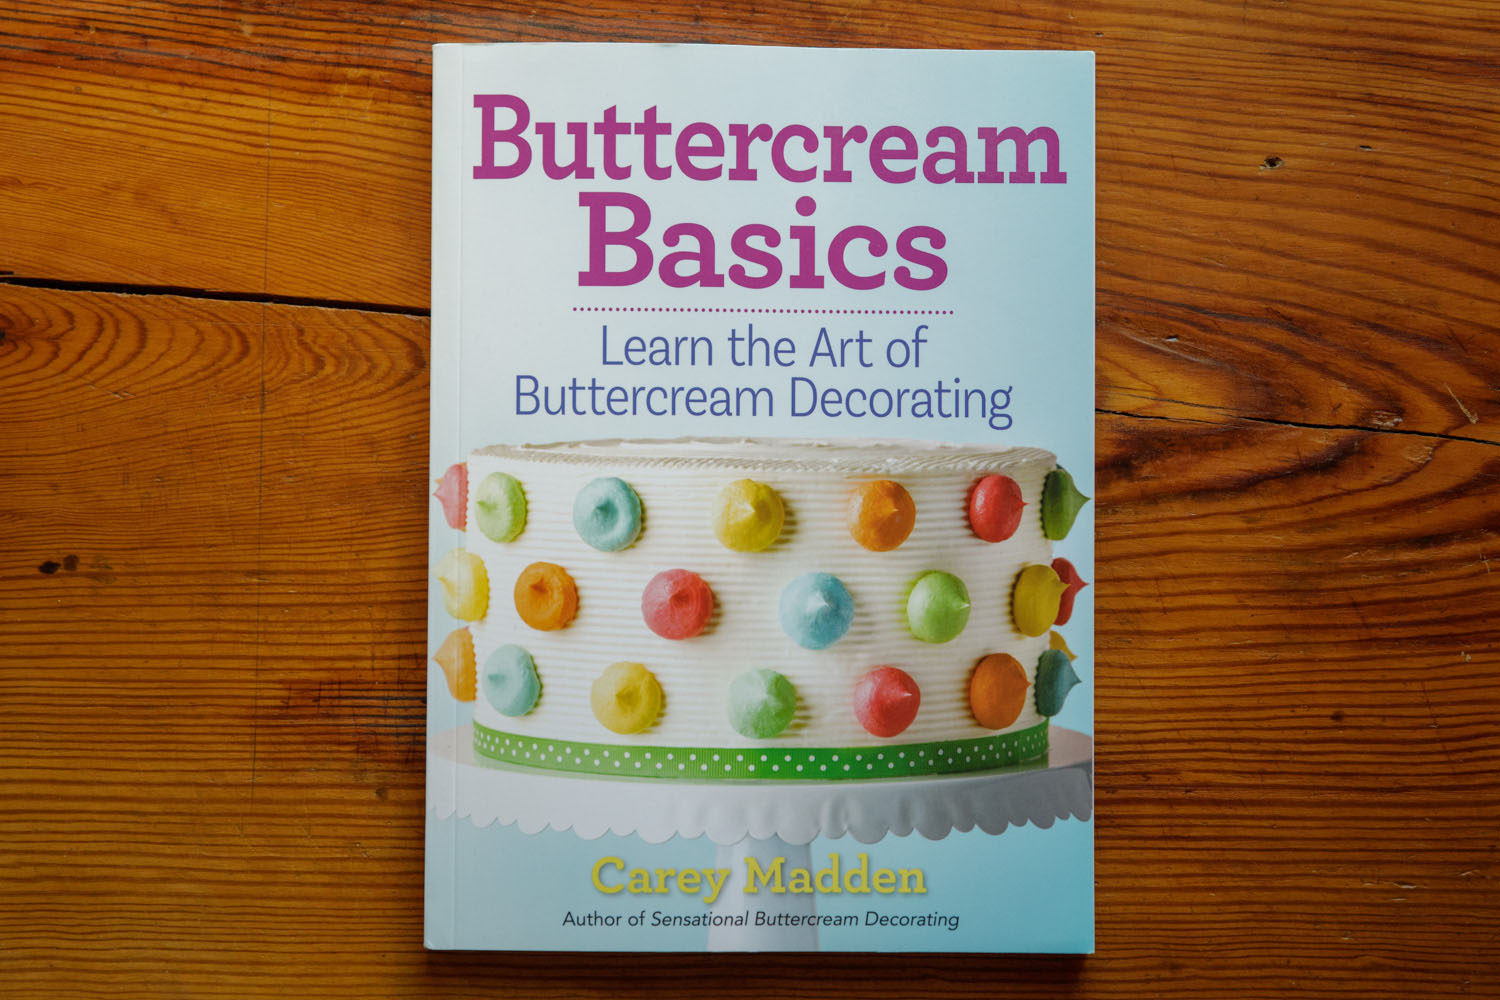 Here it is in all of it's glory, Buttercream Basics! I provided the photography over several weeks of shooting in Philadelphia.